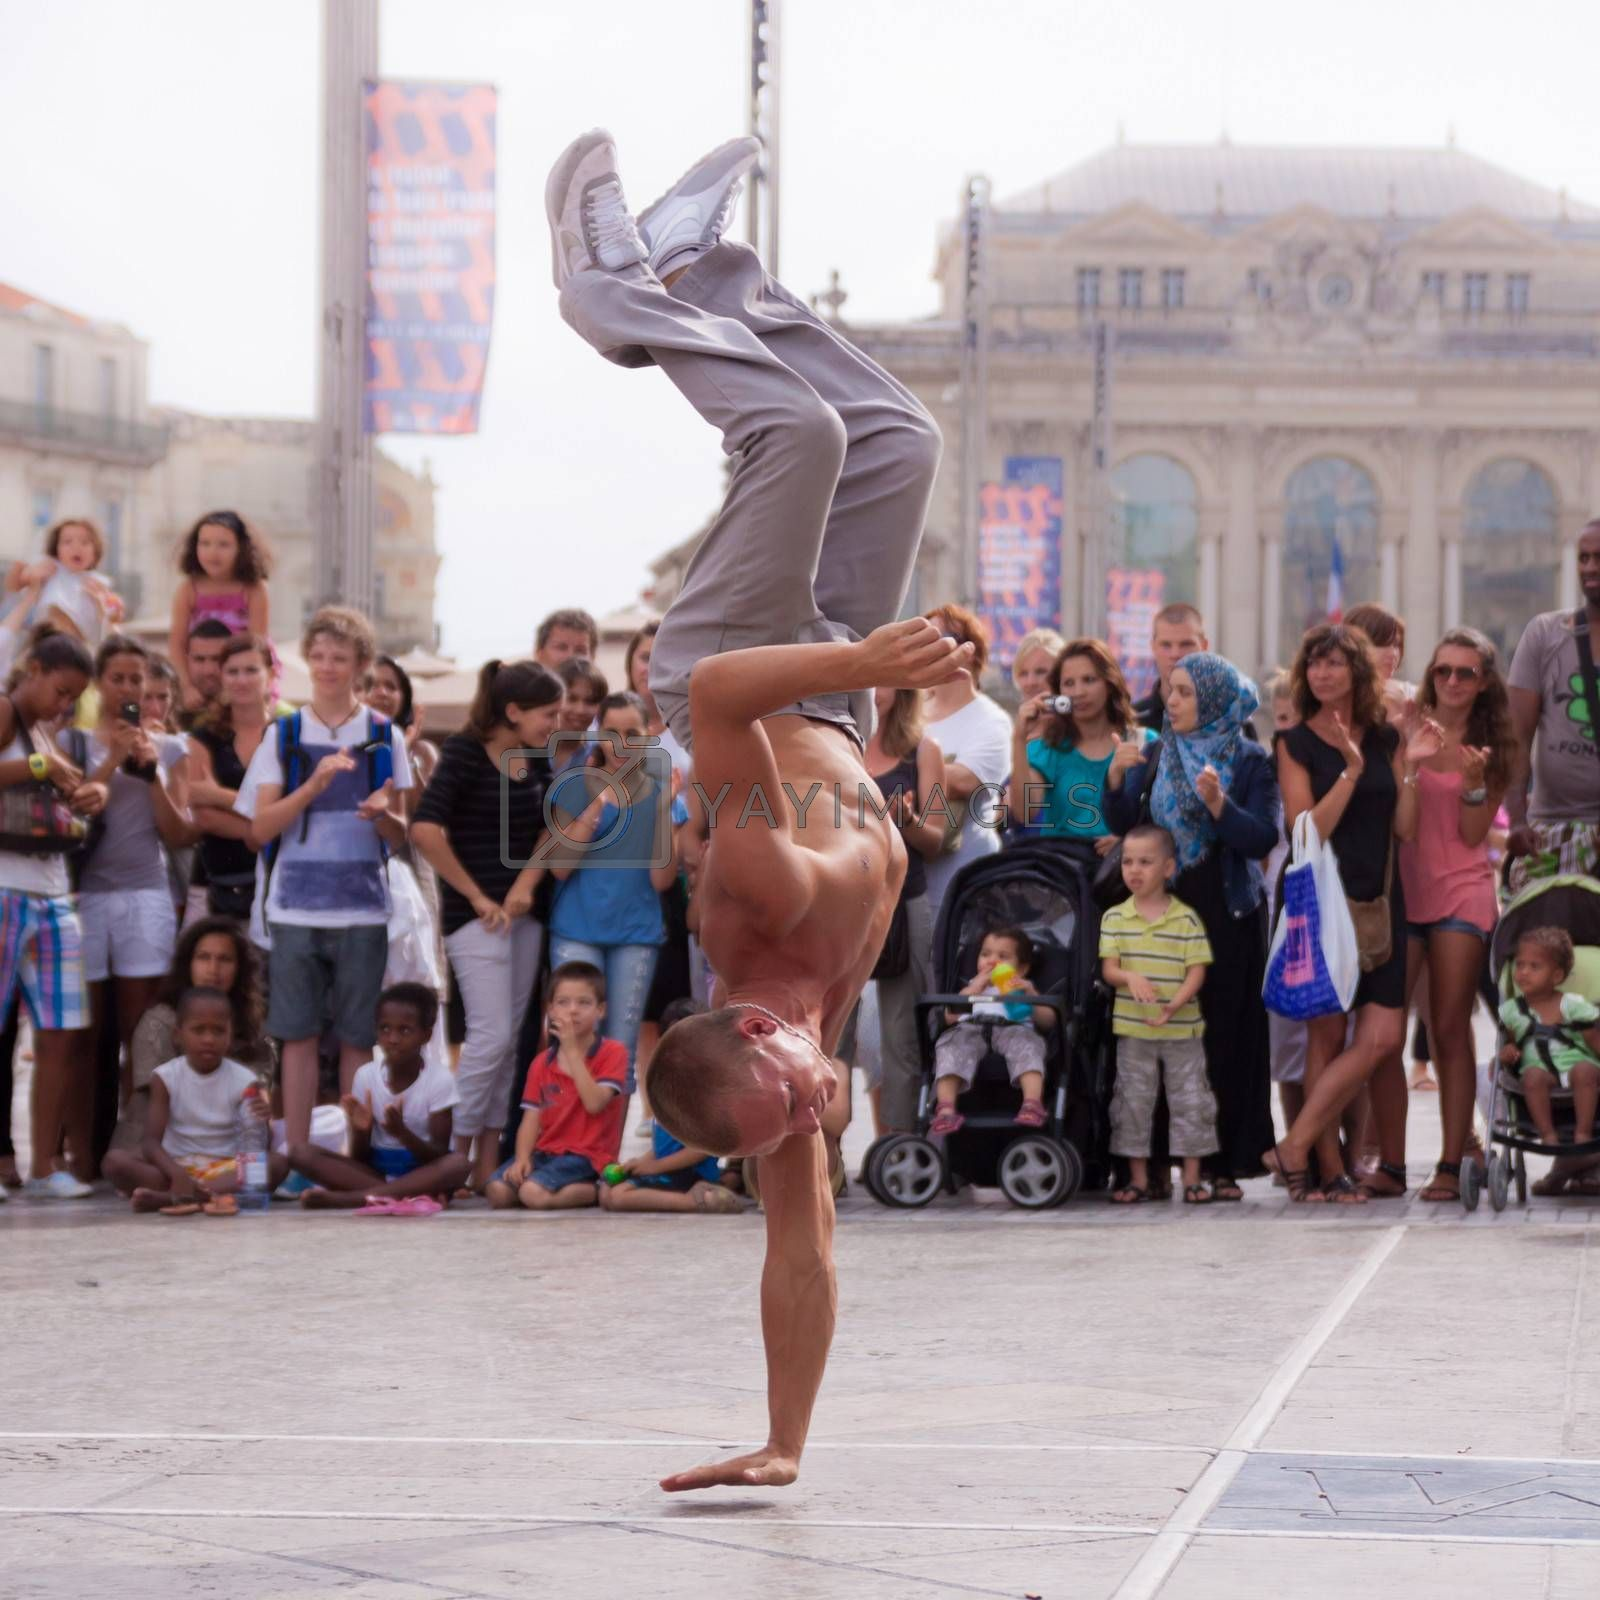 MONTPELLIER - JULY 12: Street performer breakdancing in front of the random crowd on July 12, 2011 in  Montpellier, France; B-boying or breaking is a style of street dance that originated among African American and Puerto Rican youths in New York City during the early 1970s.